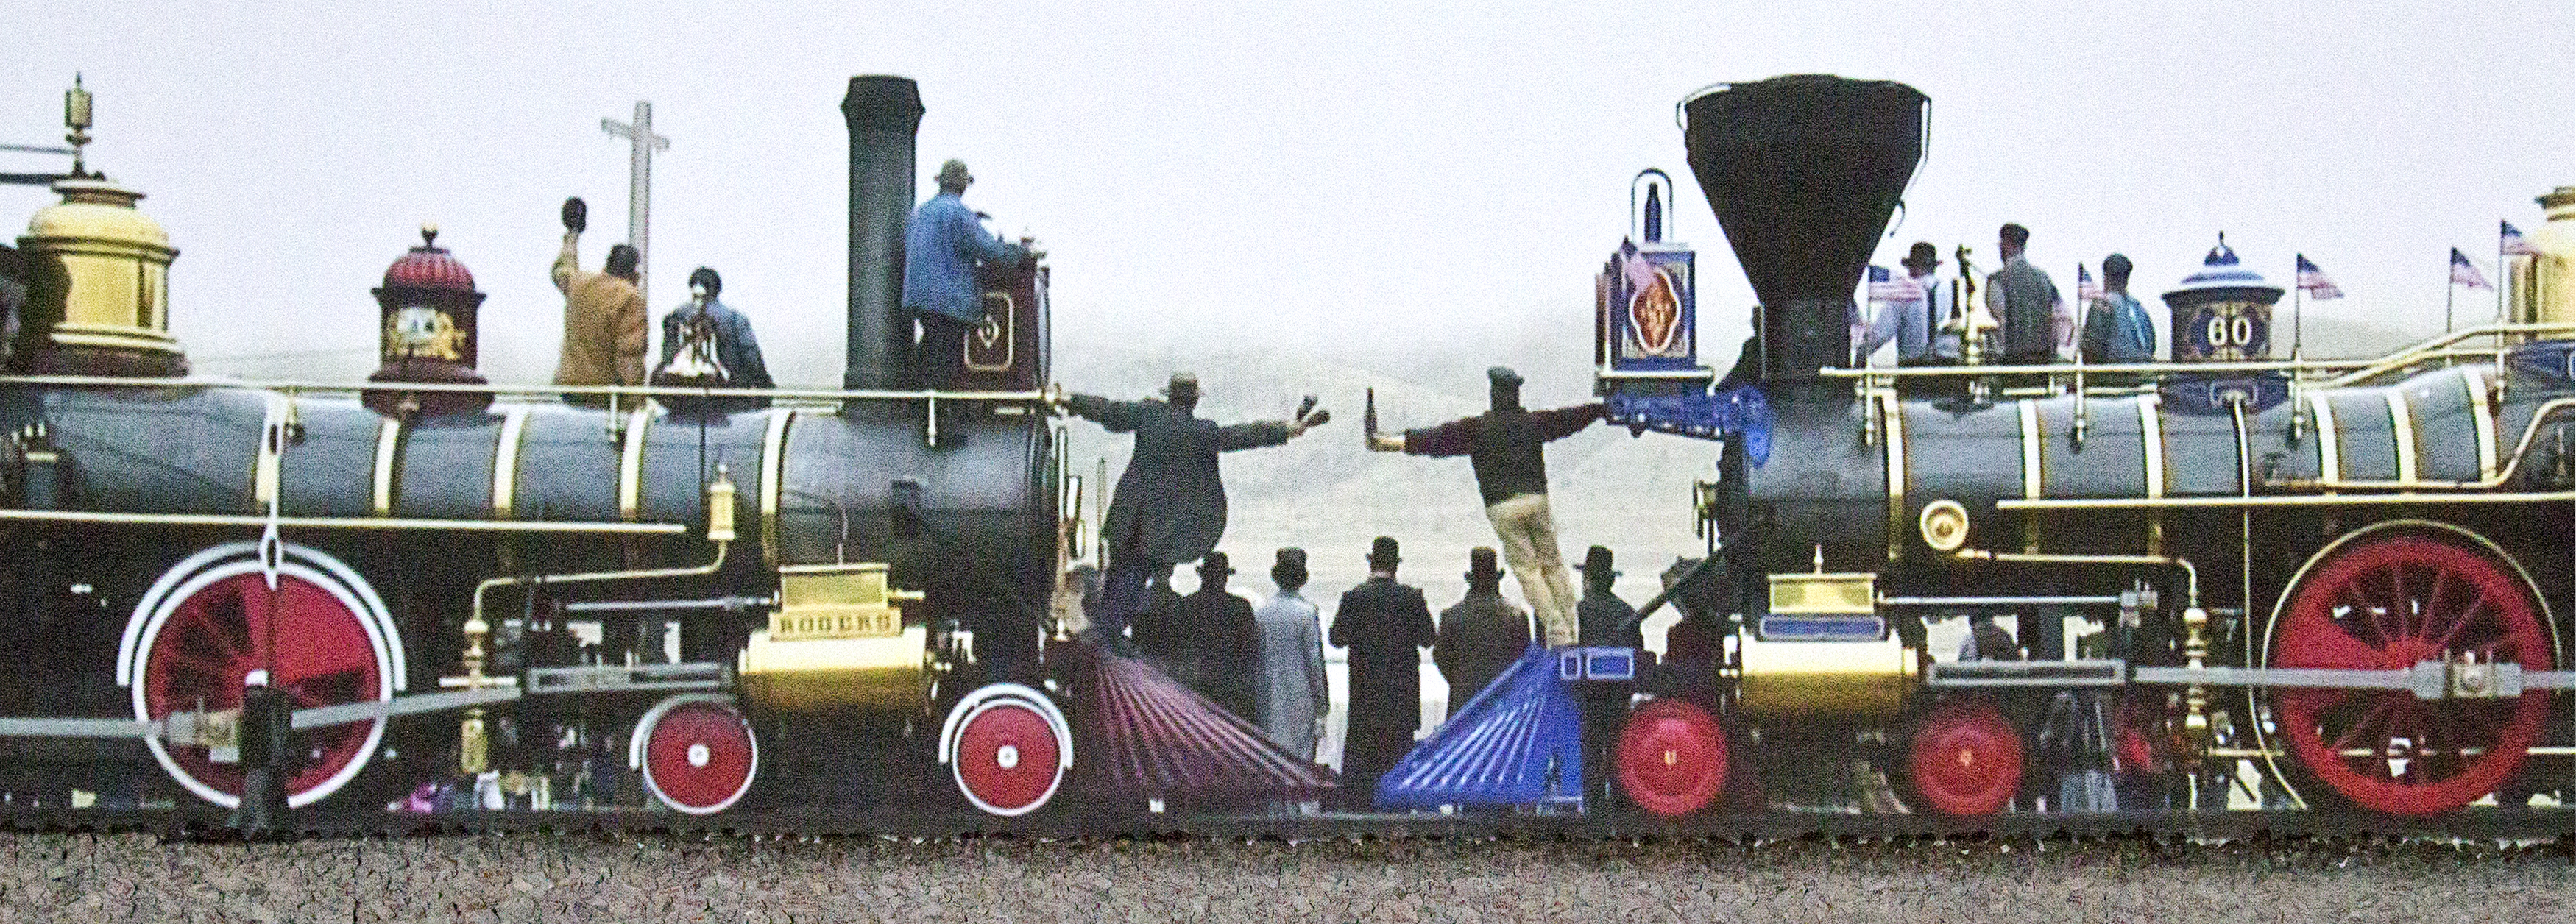 video still from Golden Spike Celebration